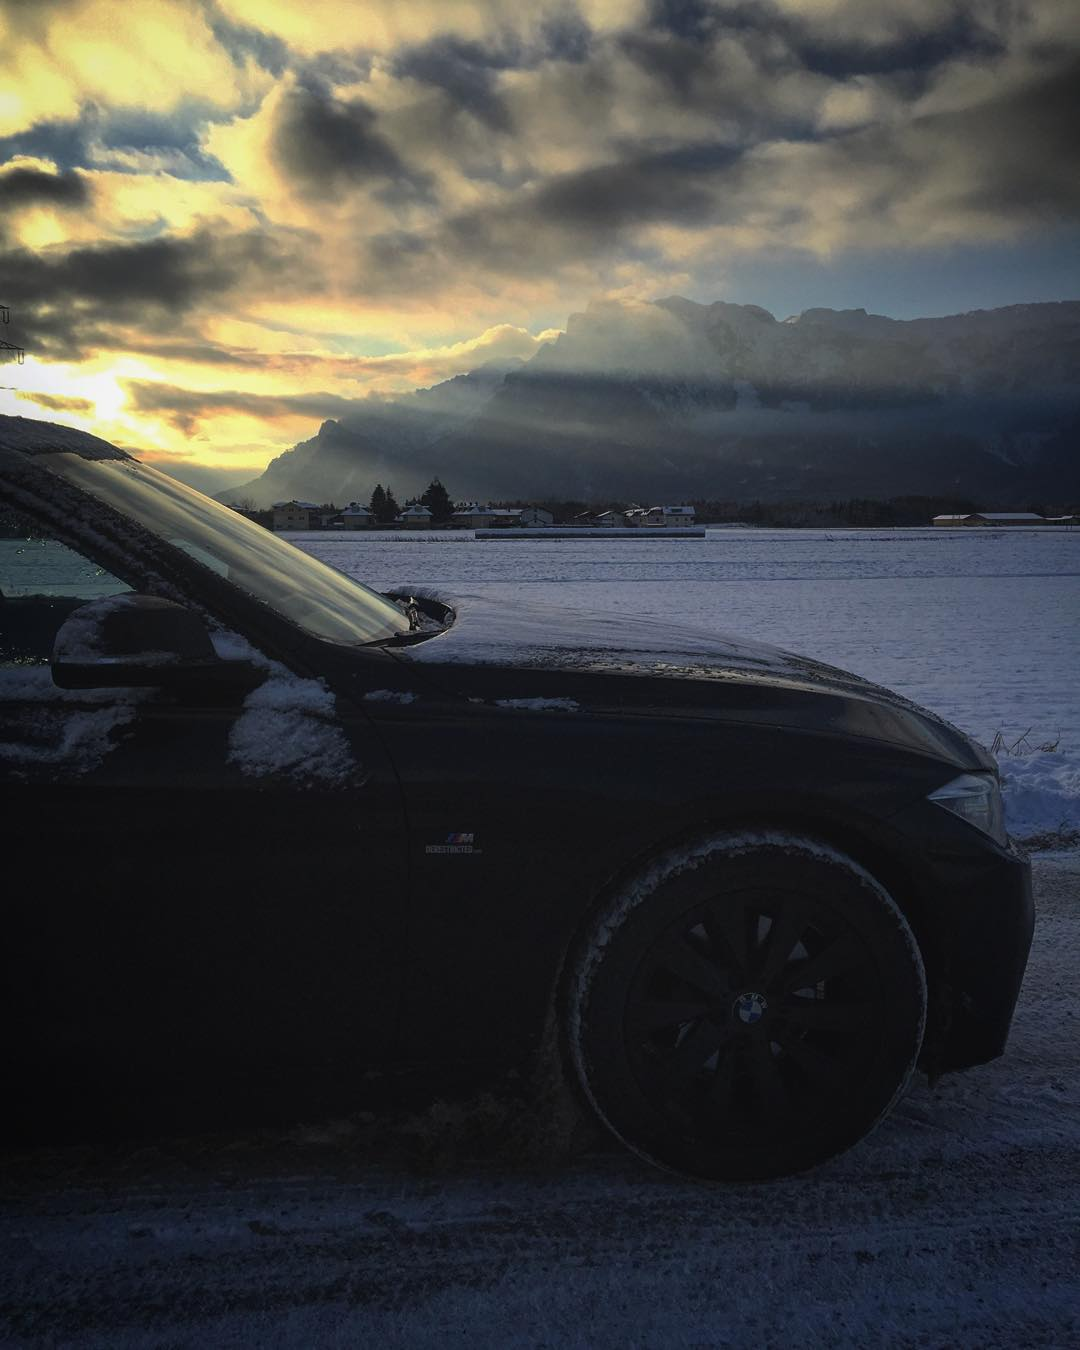 Got to give it up to #BMW for making the #xdrive system. You can turn traction control off in sport+ mode but with it on this thing is incredibly fun and predictable to drive even in super sketchy conditions. By far the most expensive car I have ever bought but well worth it so far! #msport #f31 #salzburg